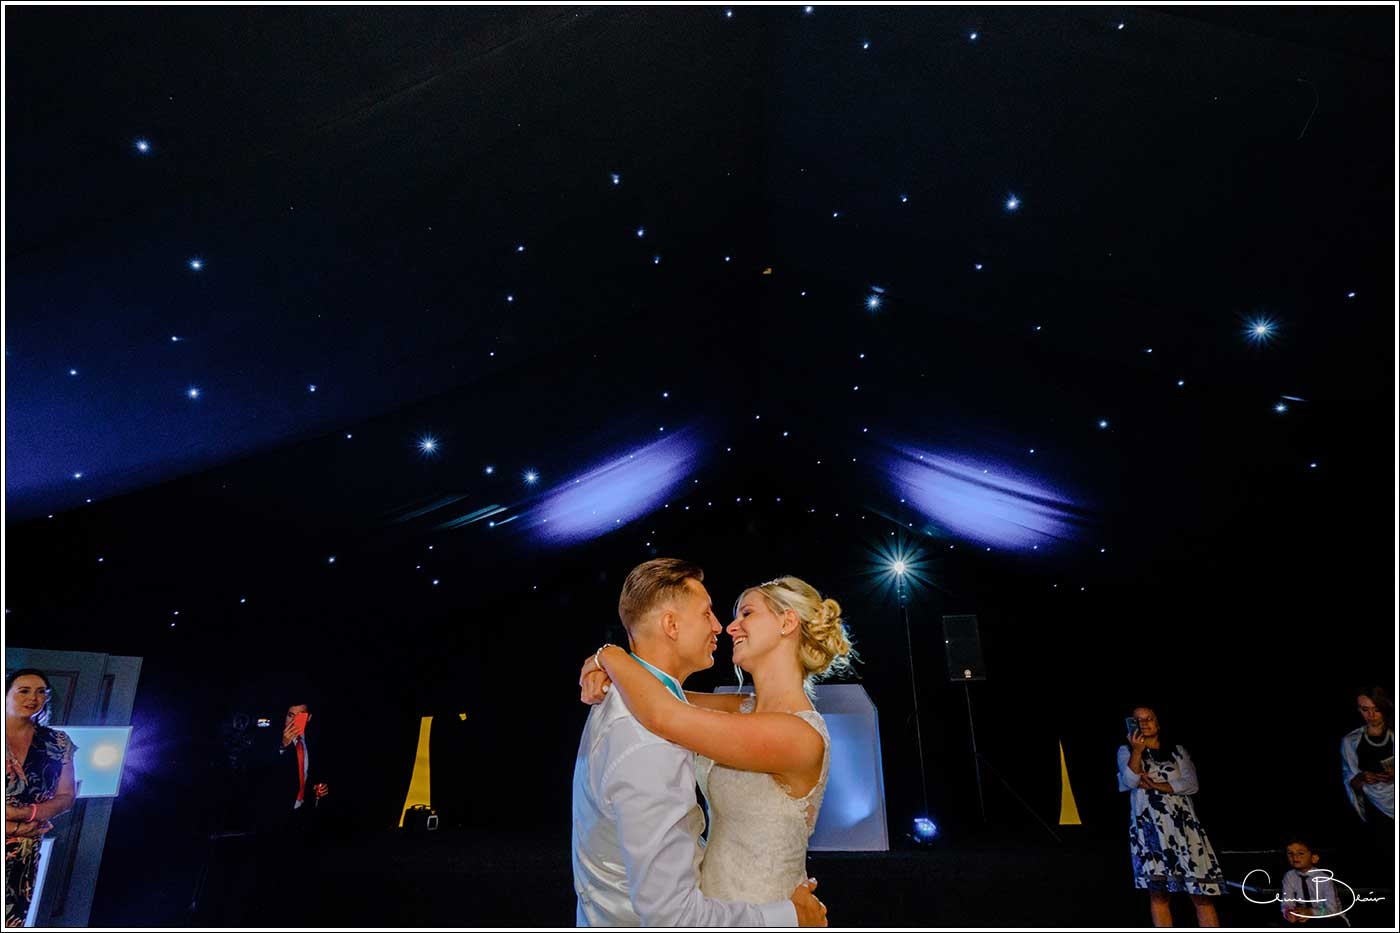 Coombe Abbey wedding photography showing bride and groom dncing on the dance floor